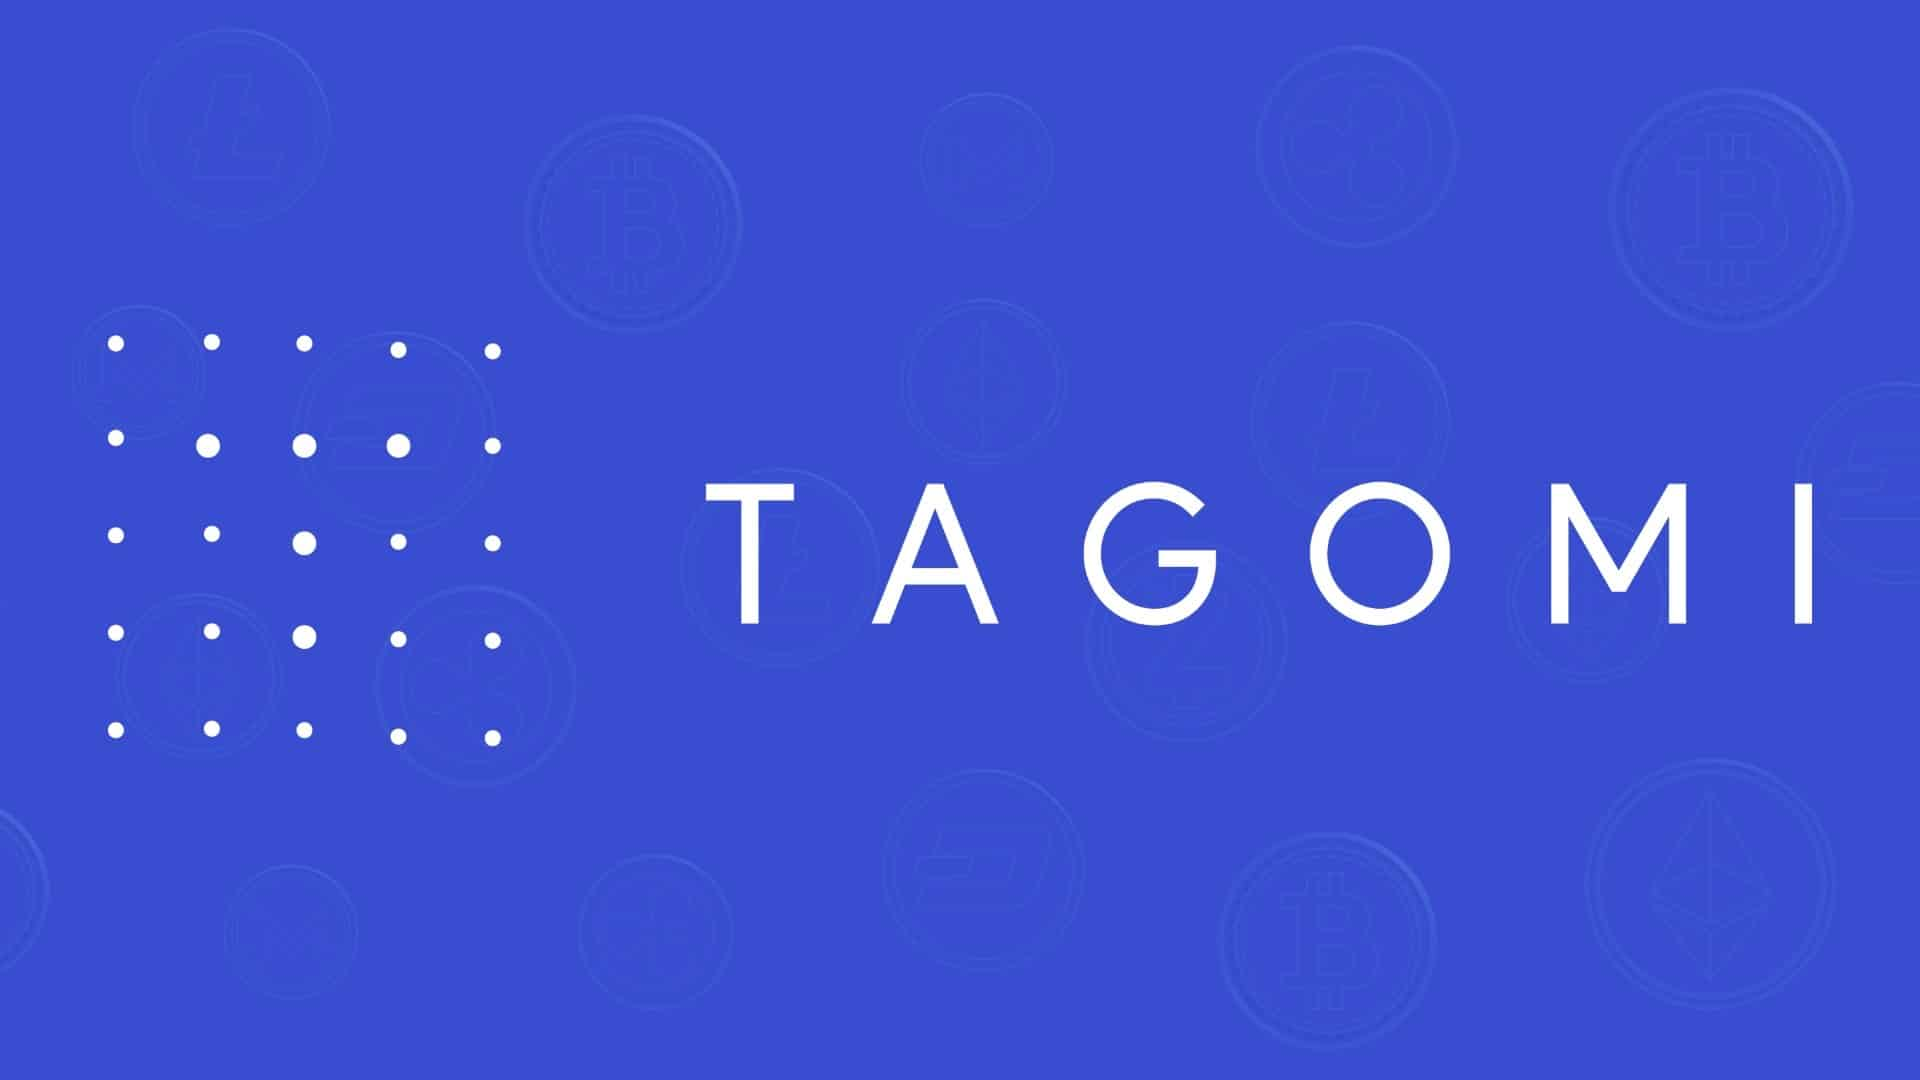 Cryptocurrency Startup, Tagomi Hacks Trading Tariff to Charm Big Crypto Traders